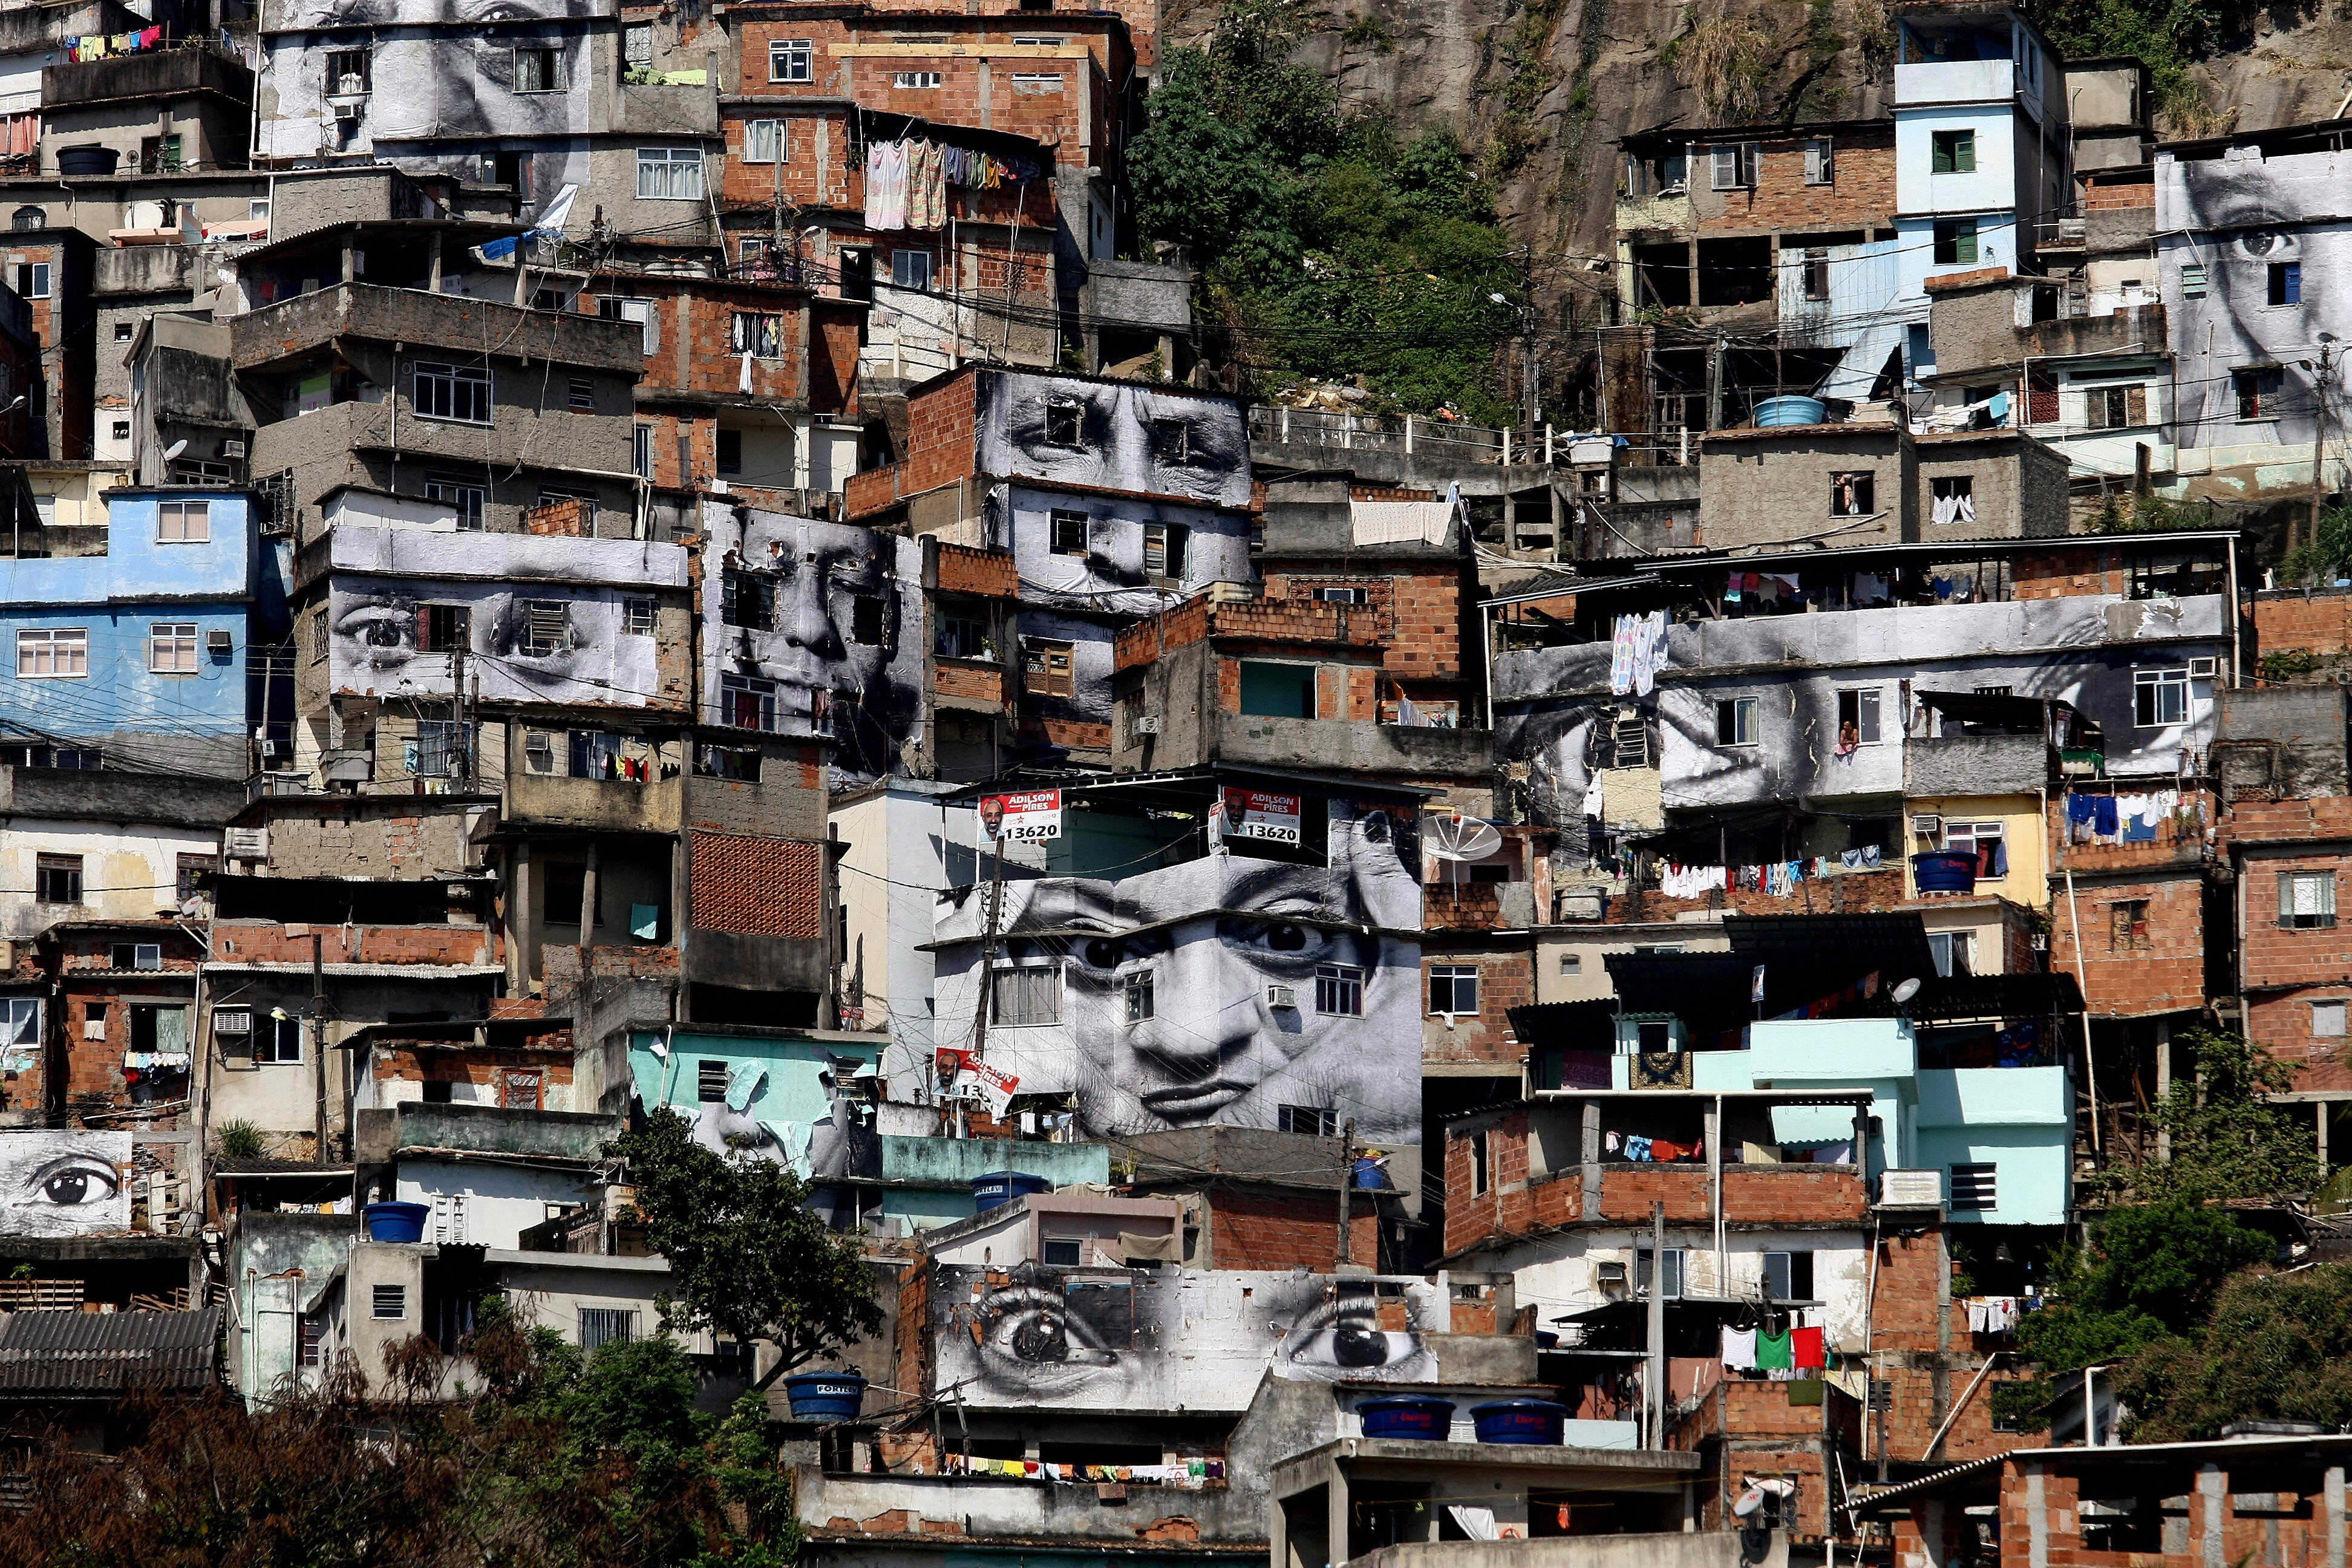 French street artist JR's <i>Women Are Heroes</i> dominates the Morro da Providencia favela, one of Brazil's most dangerous, in Rio de Janeiro, August 20, 2008.